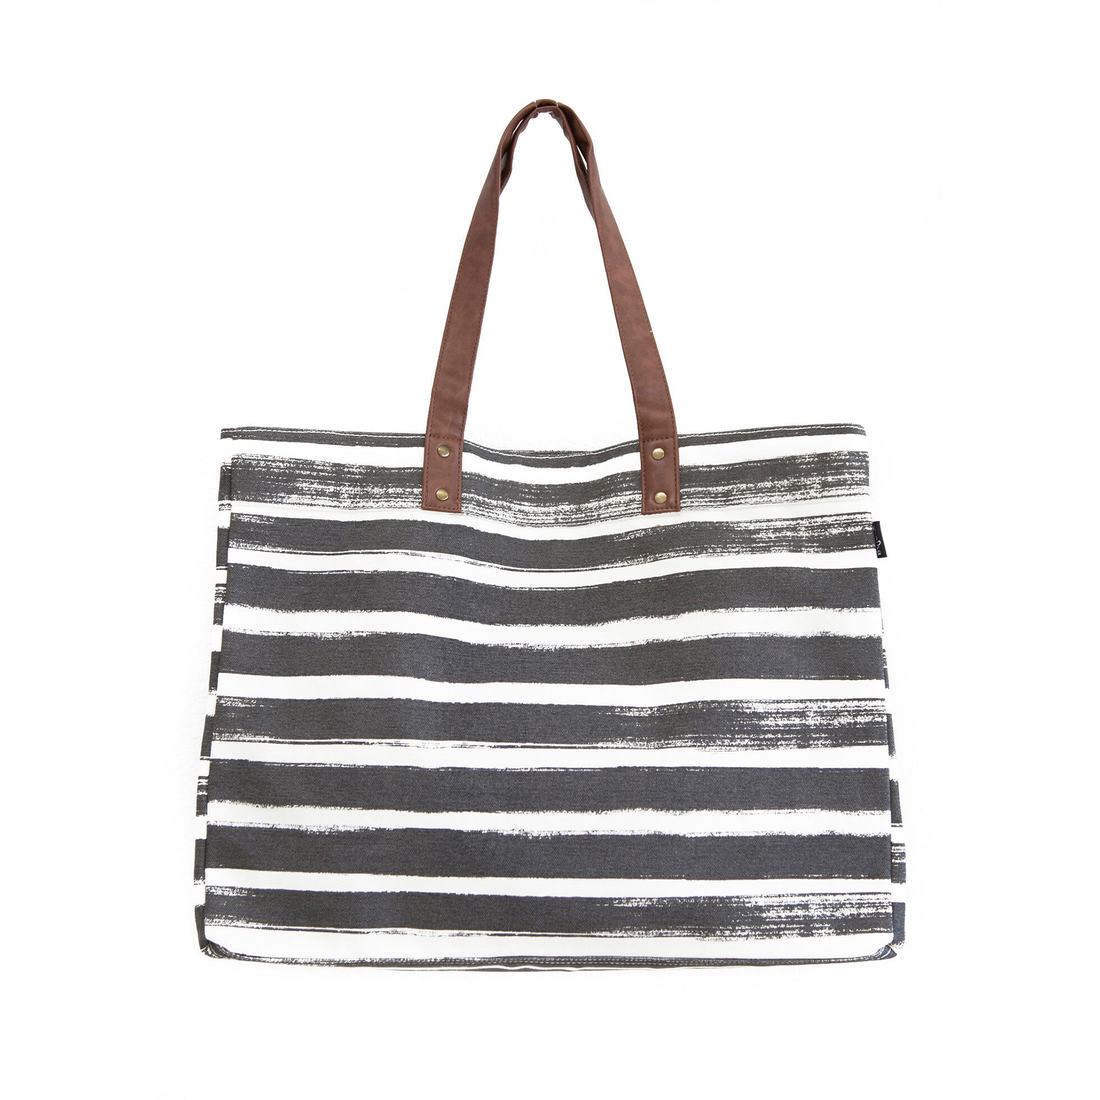 Carryall Tote Plus - Charcoal Stripe